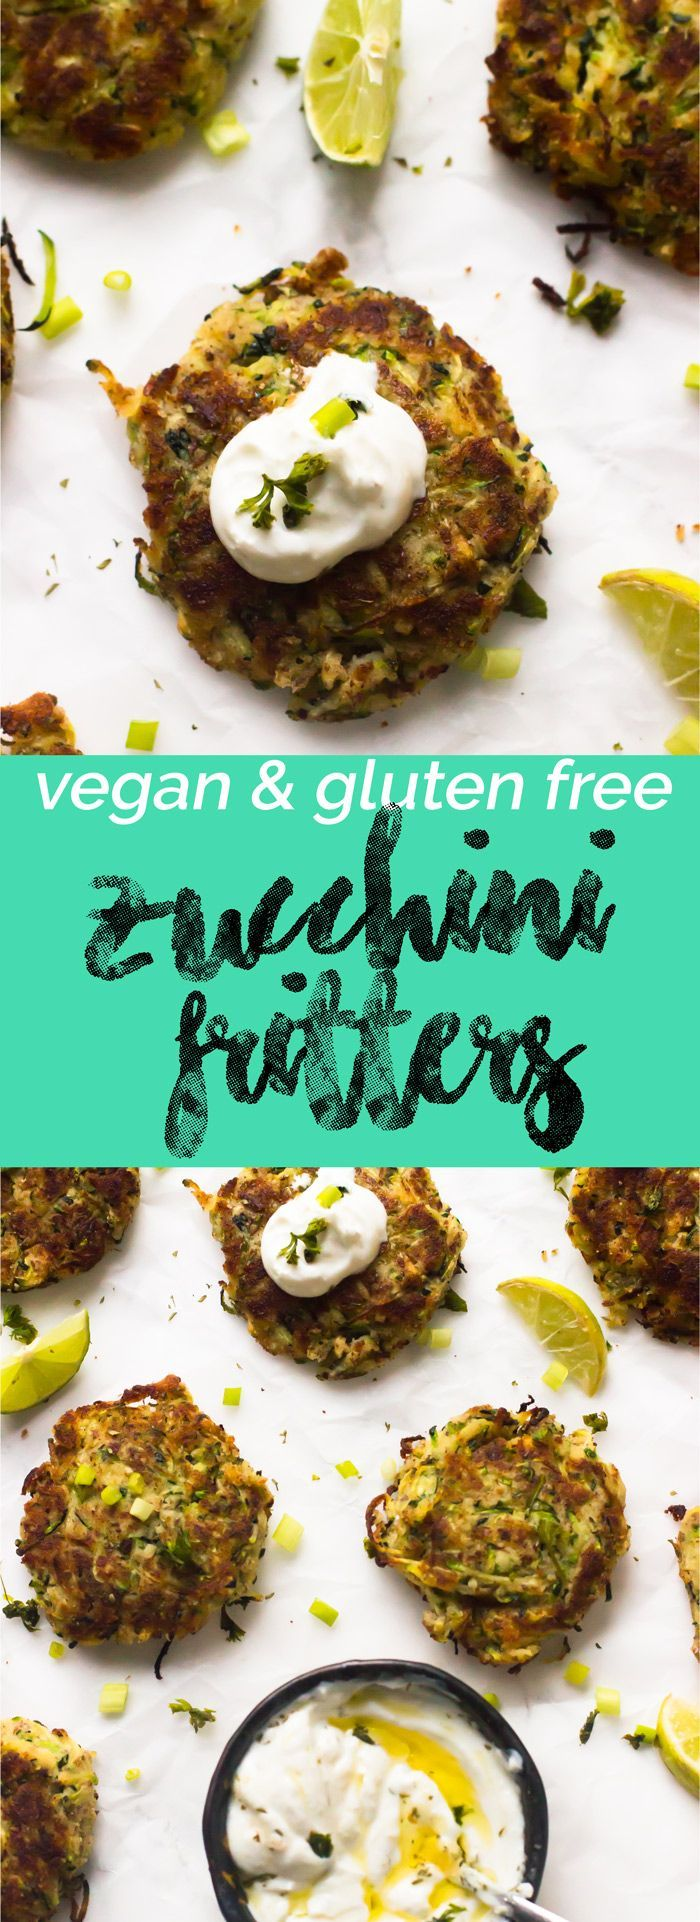 These Vegan Zucchini Fritters are gluten free, crisp not the outside and soft and flavourful on the inside! All in under 30 minutes.